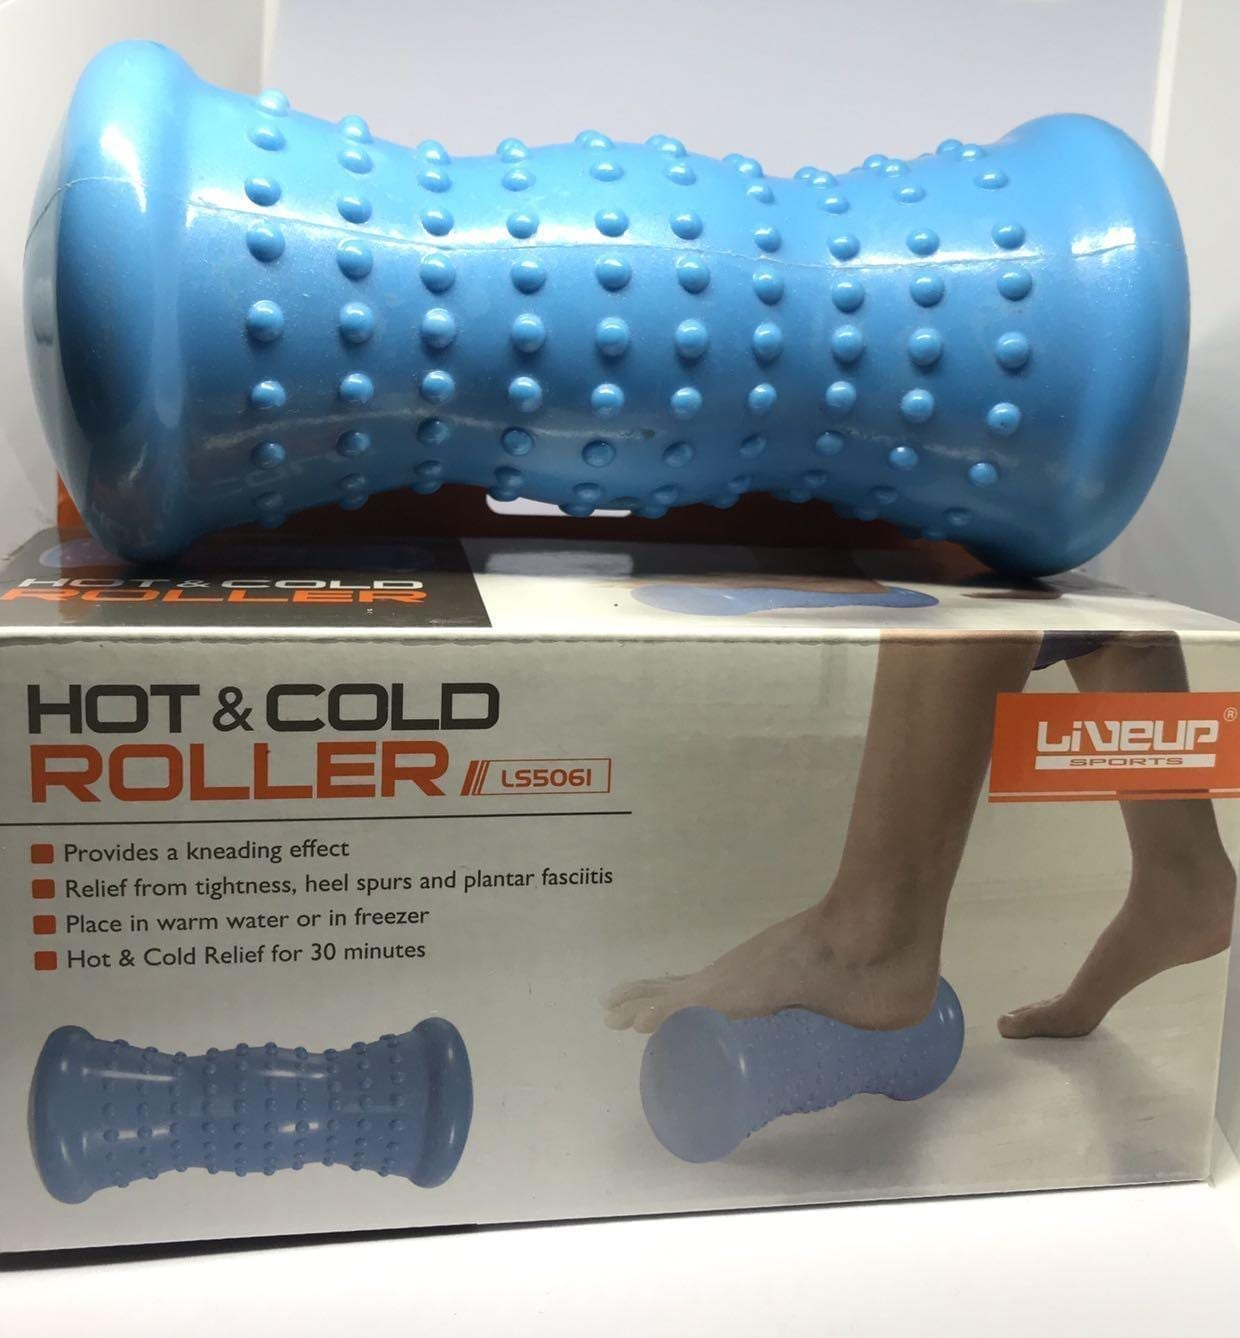 Hot and Cold Roller - Liveup - Roller Foot Massager  - Blue